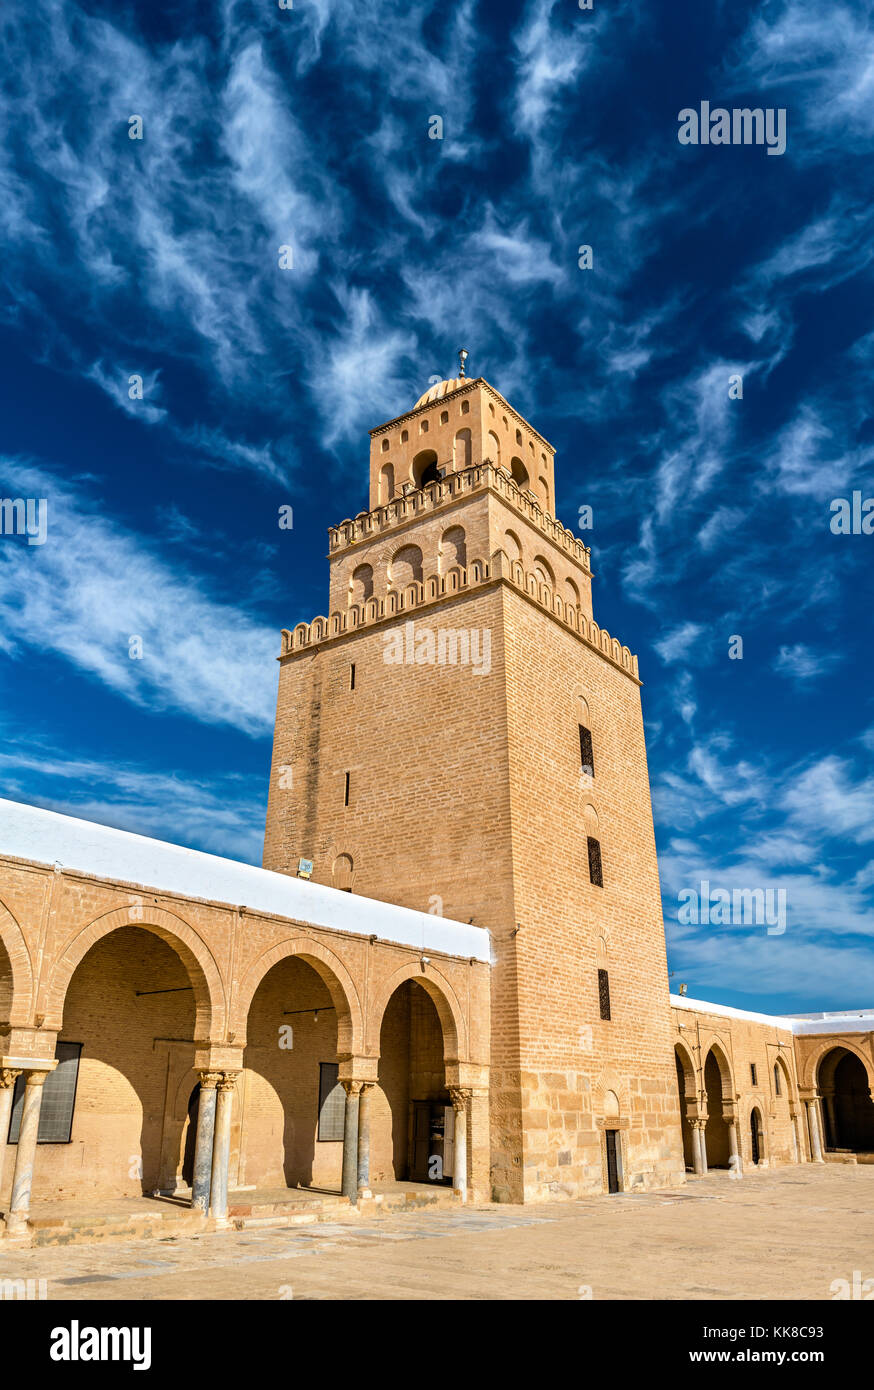 The Great Mosque of Kairouan in Tunisia - Stock Image